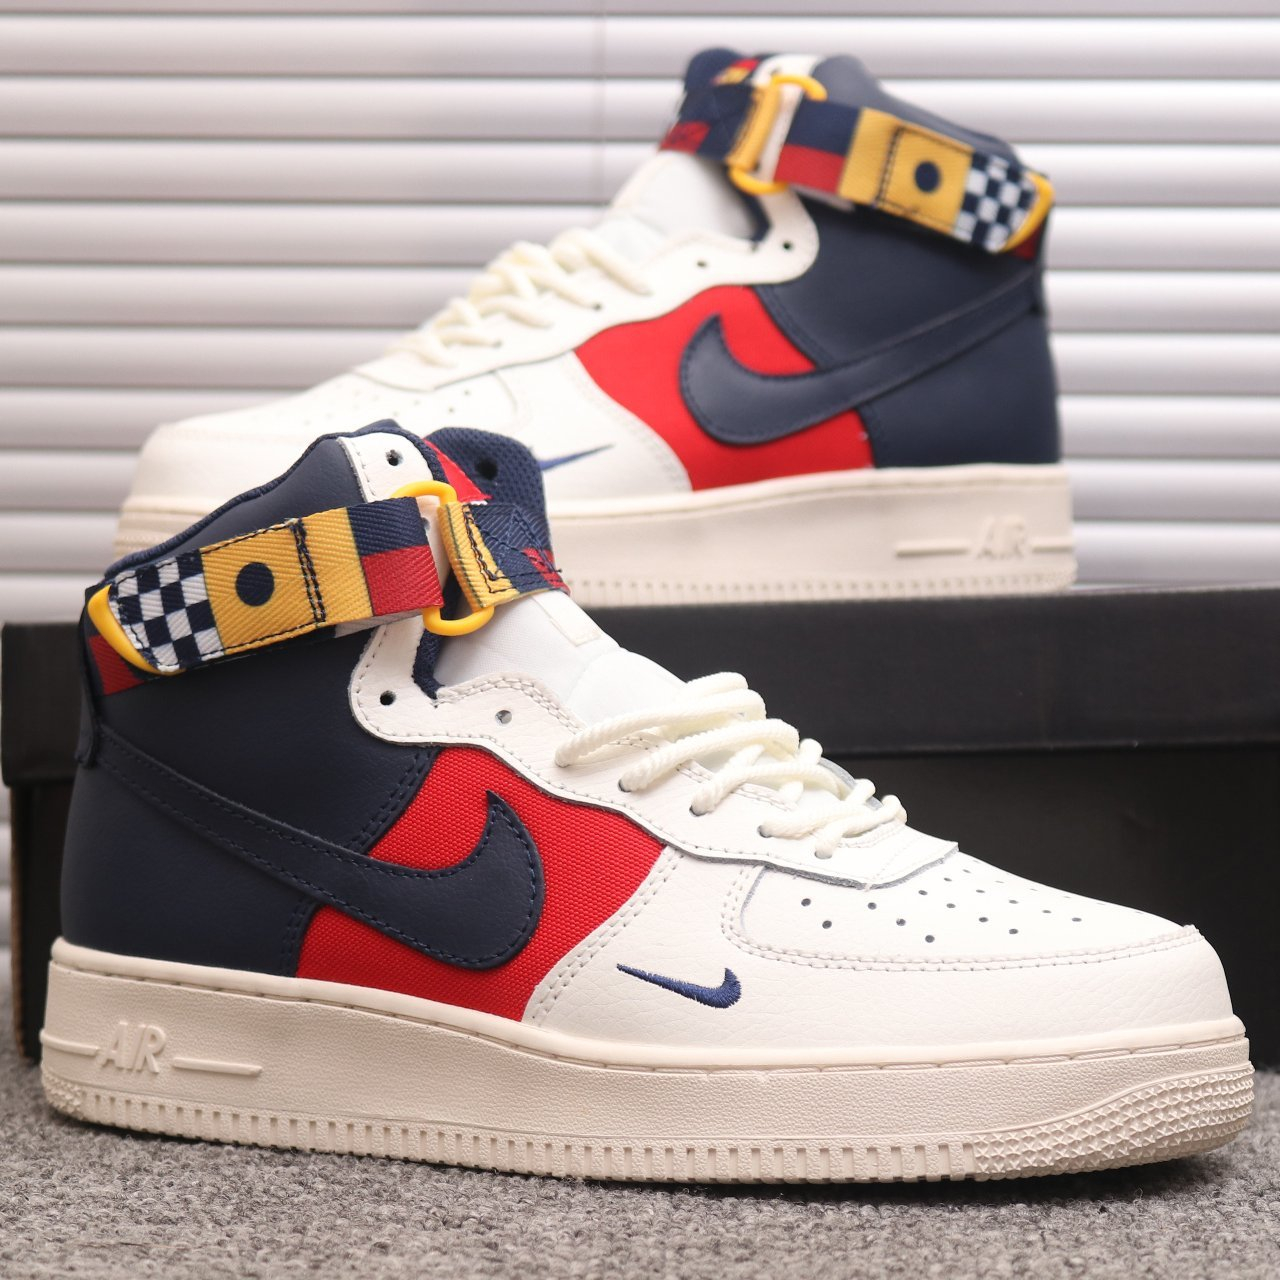 Image of Nike Air Force One matching color high-top sneakers for men and women